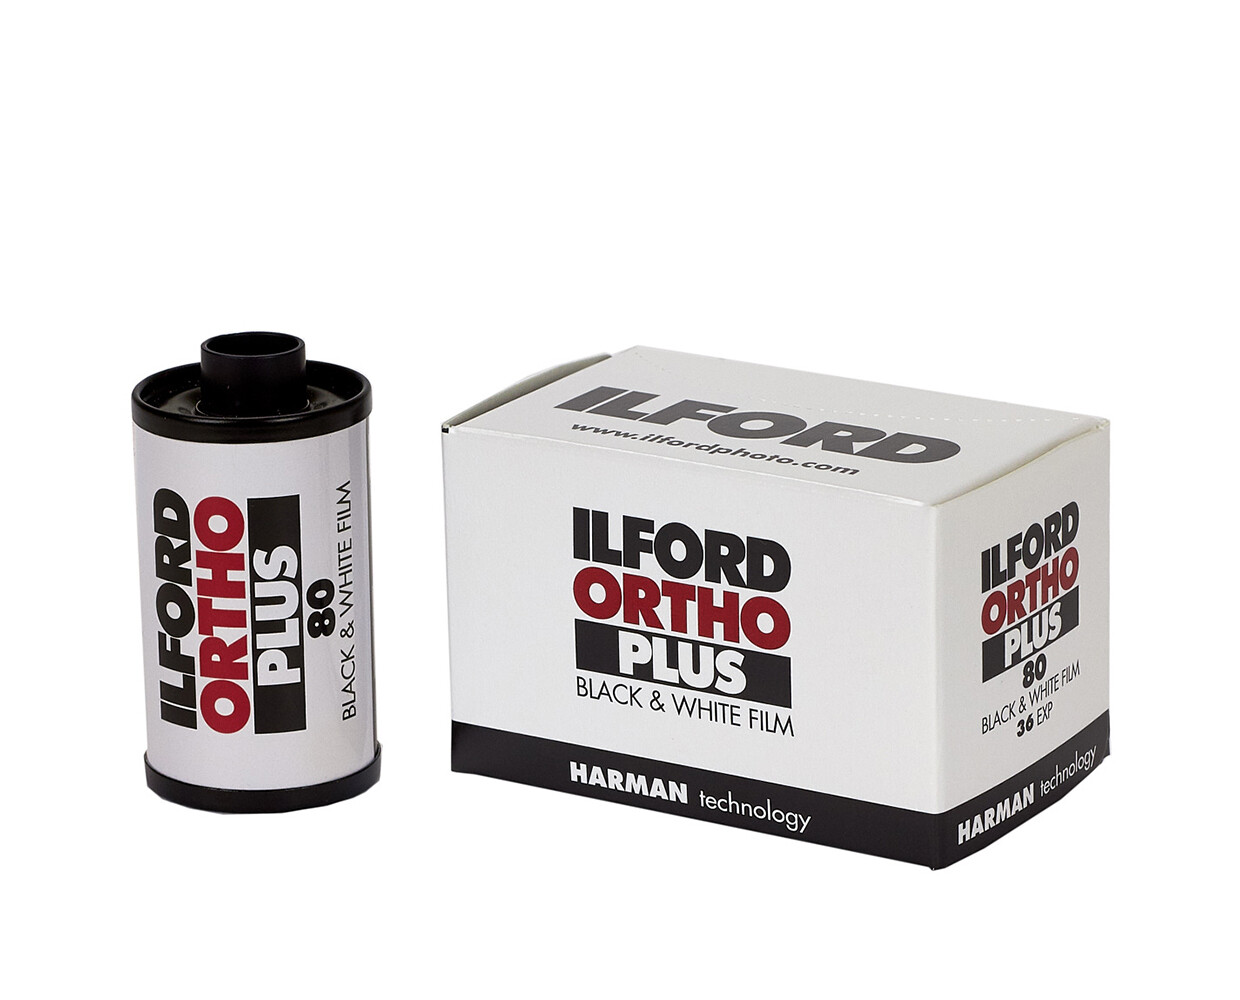 ILFORD Ortho 80 Plus 135-36